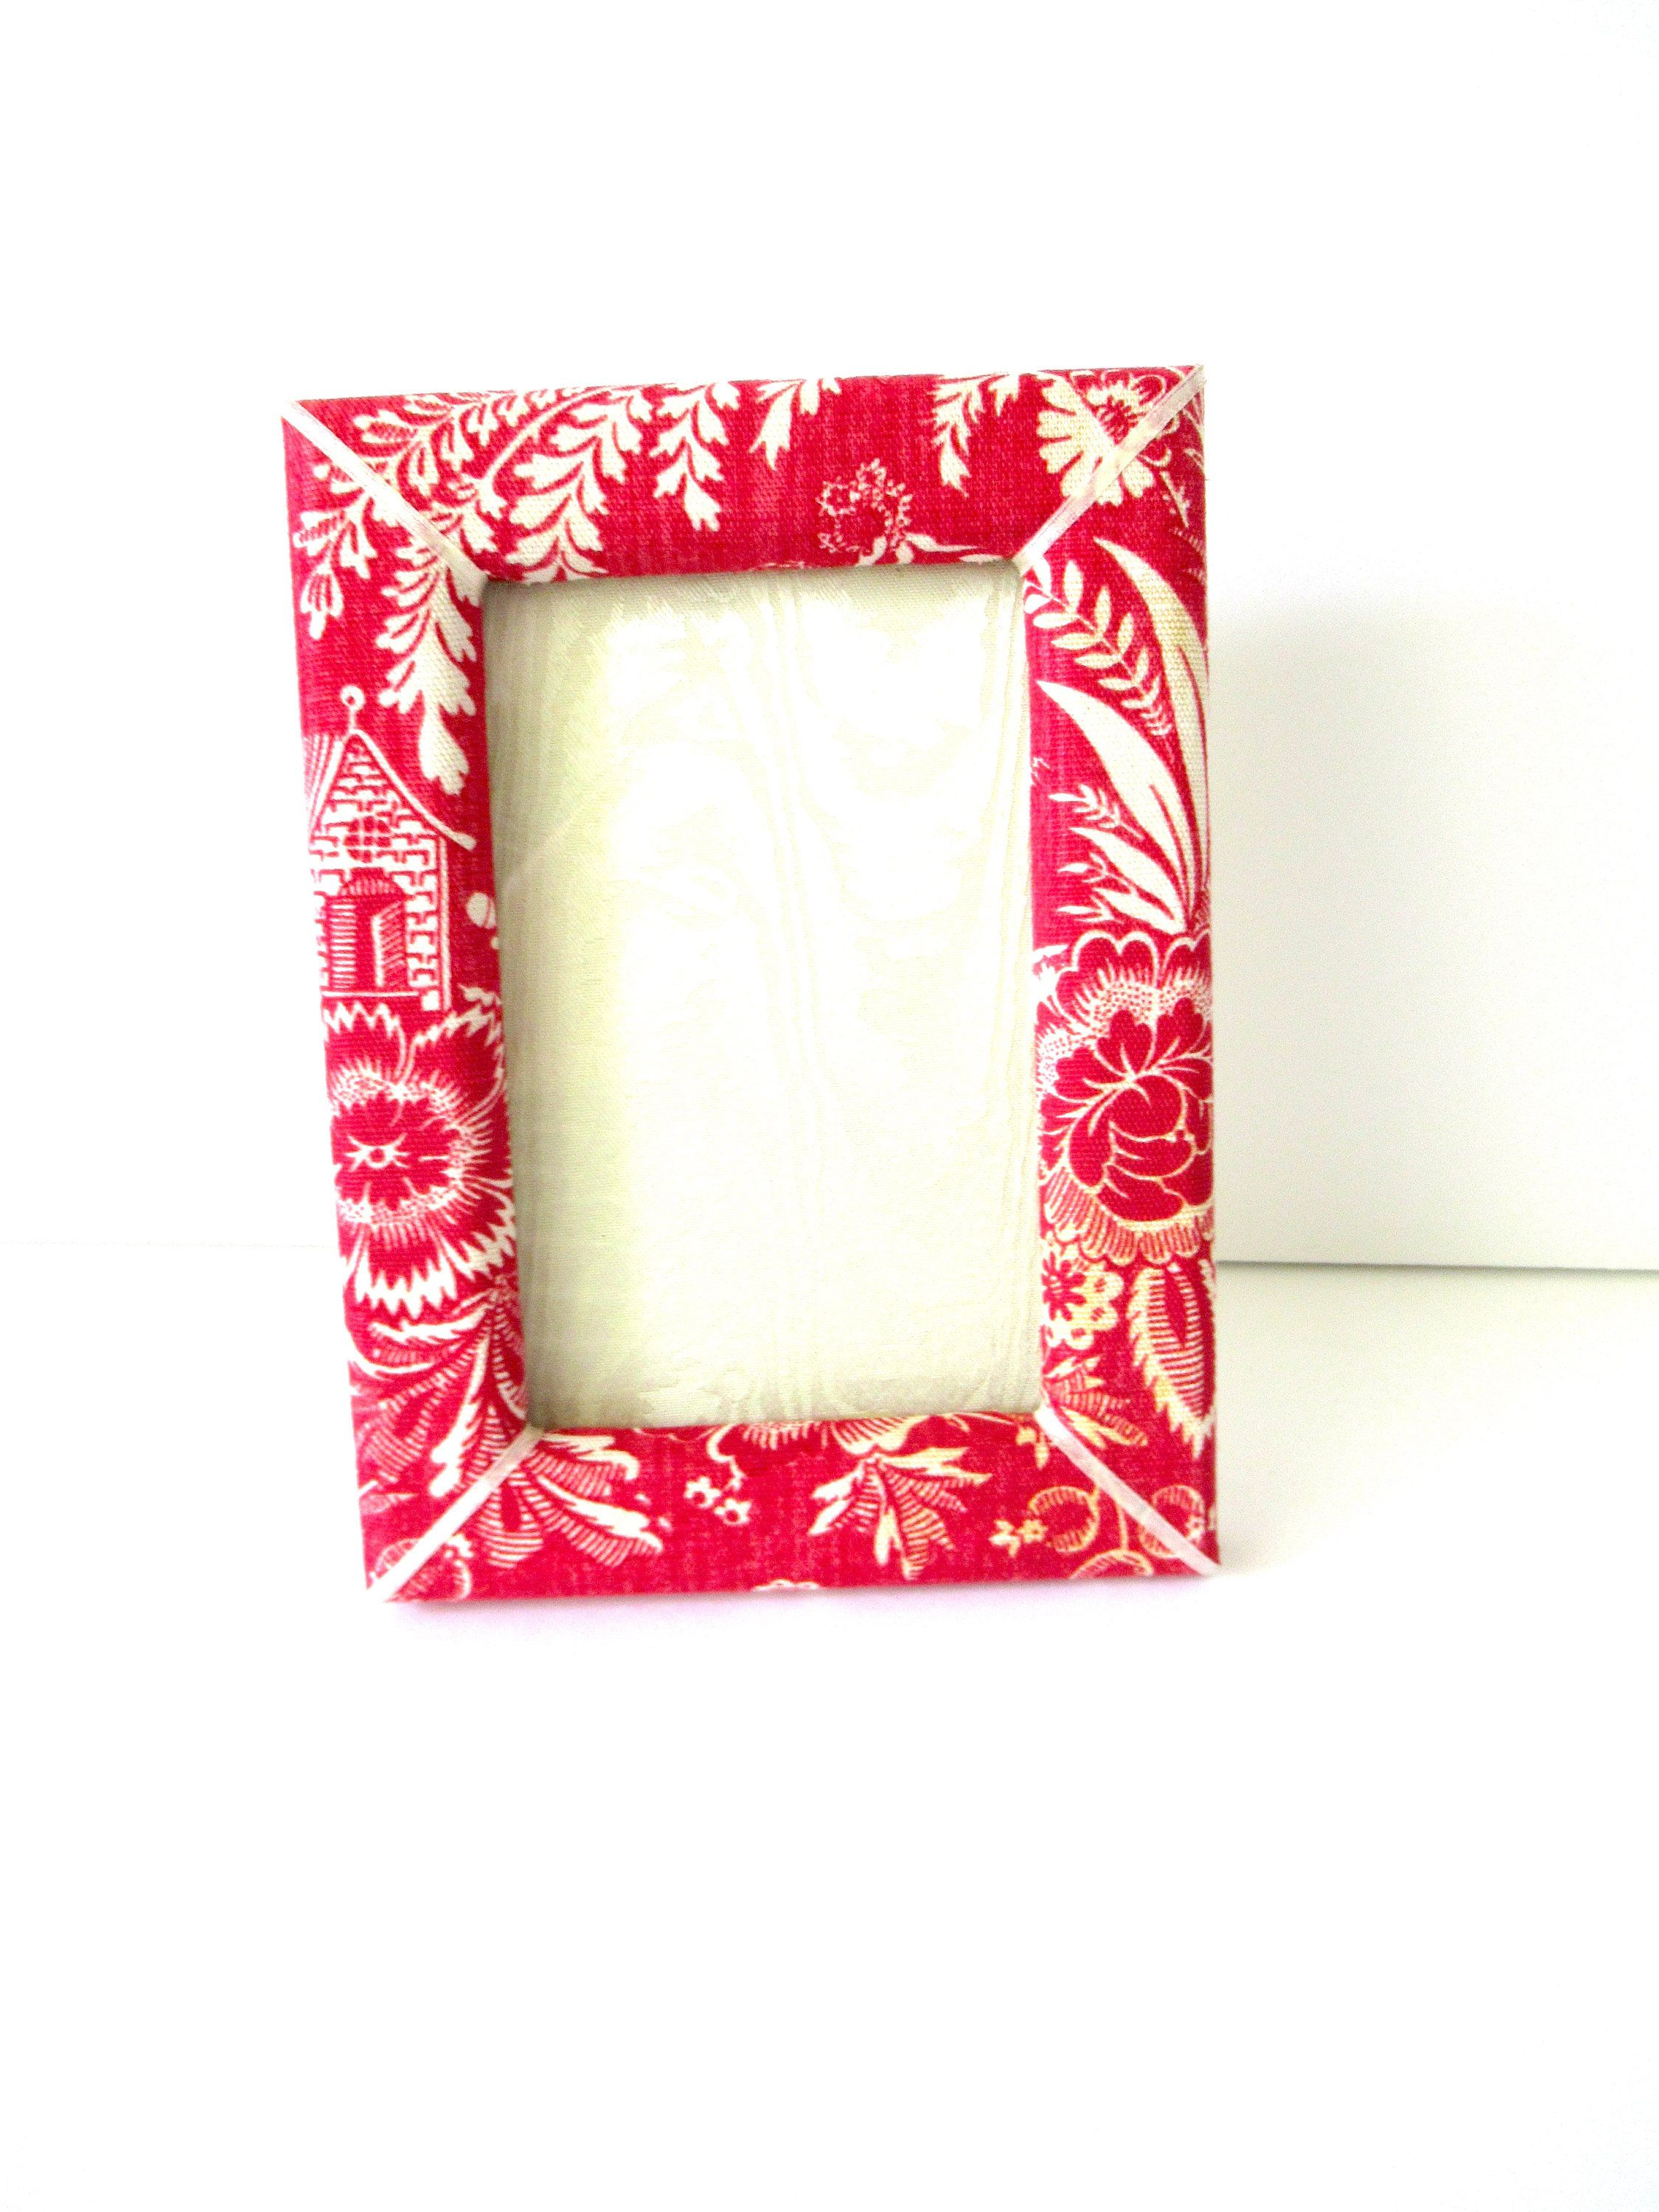 Pierre Deux Photo Frame, Fabric Photo Frame, French fabric, Pierre ...